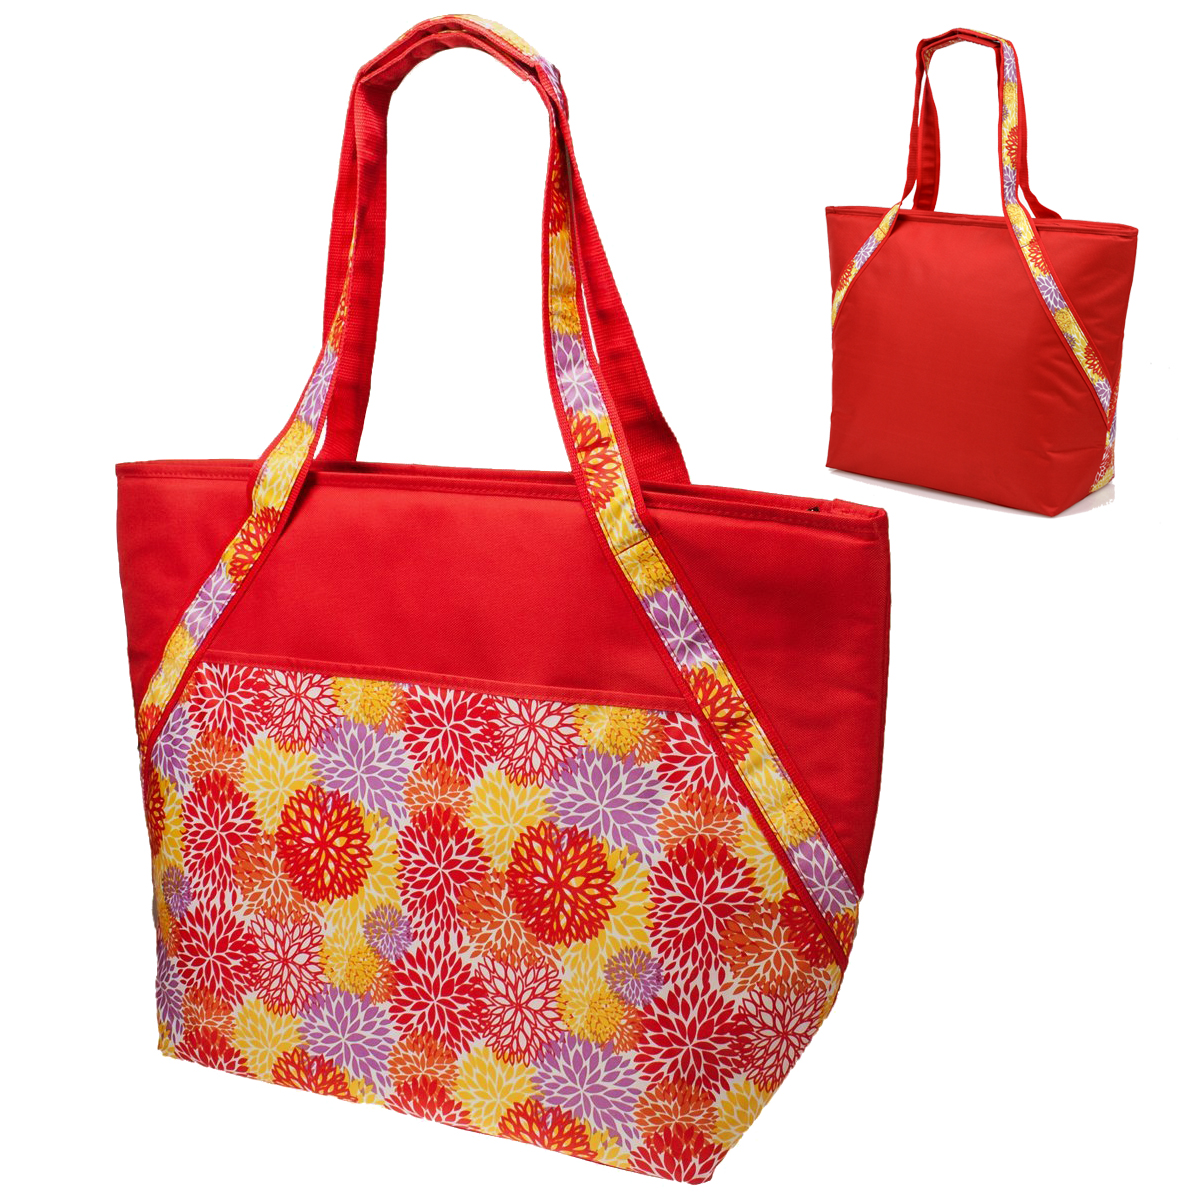 Sachi pink insulated fashion lunch tote 88